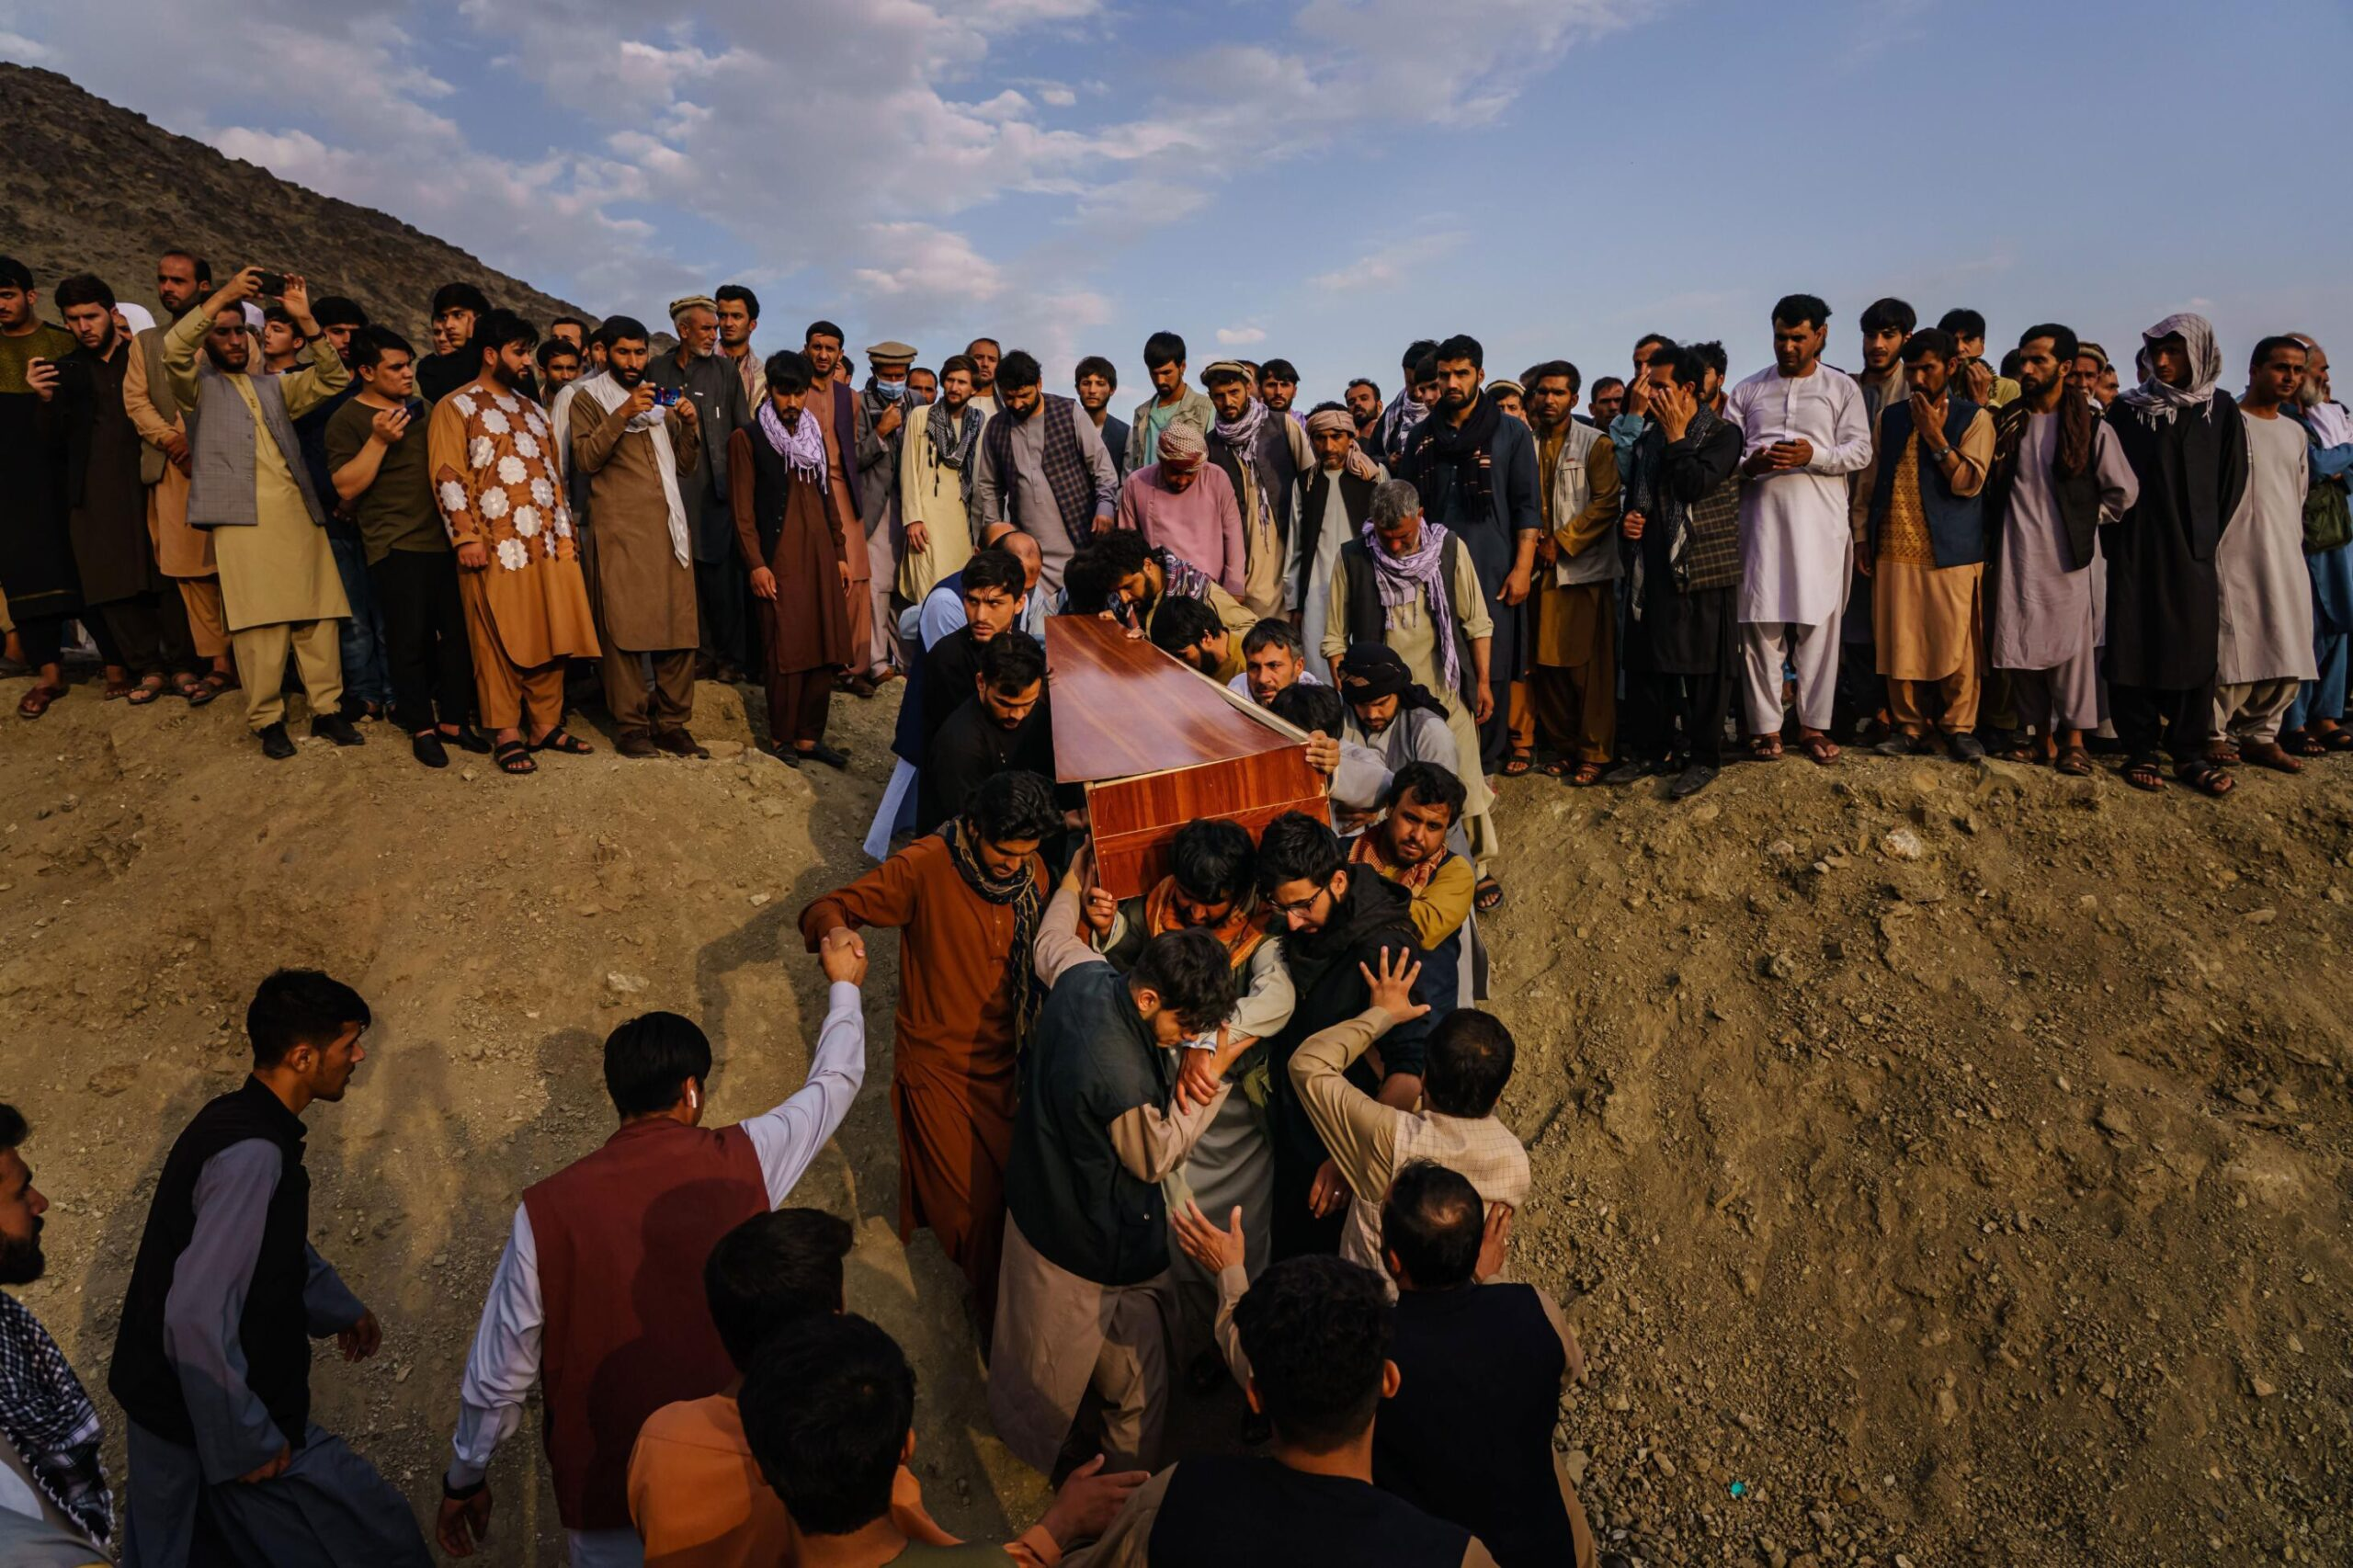 <i>Marcus Yam/The Los Angeles Times/Shutterstock</i><br/>Caskets for the dead are carried towards the gravesite as relatives and friends attend a mass funeral for members of a family that is said to have been killed in a U.S. drone airstrike